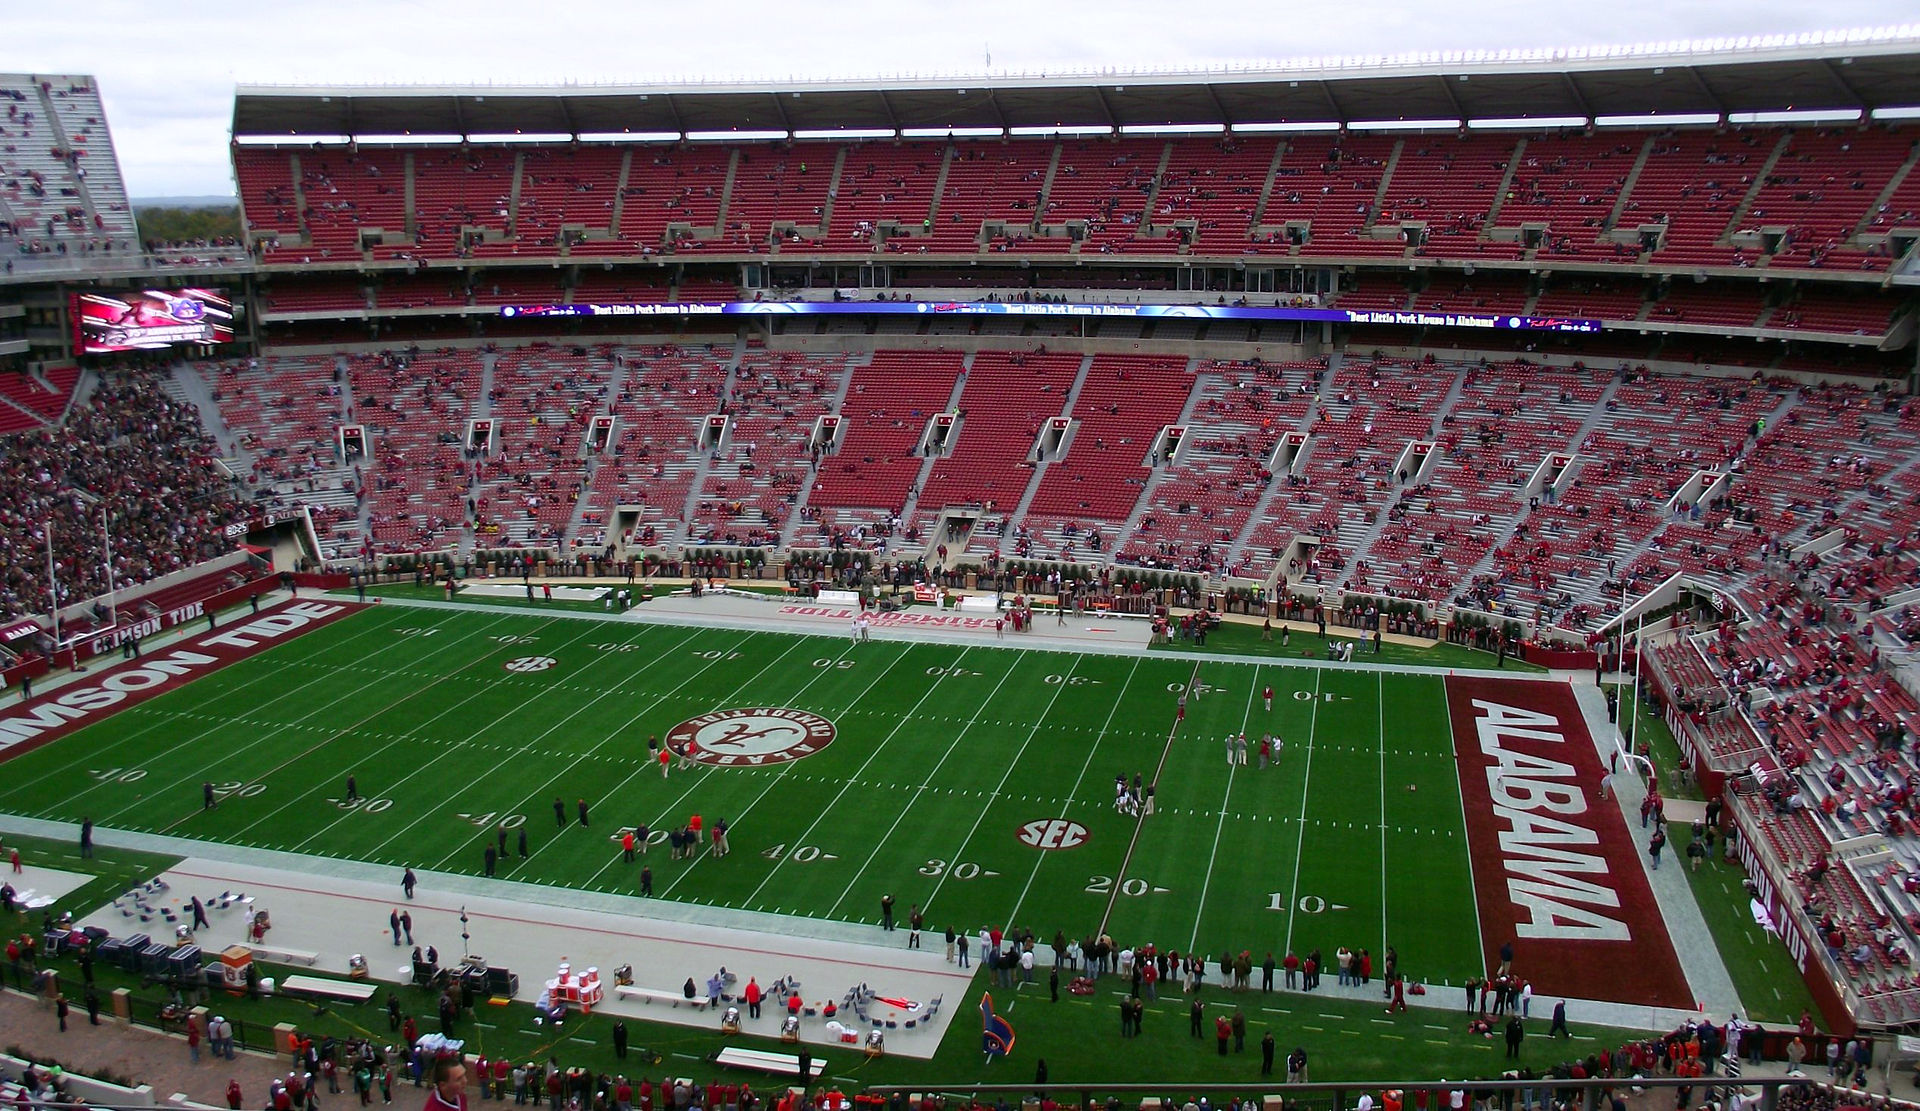 Alabama looks to knock off #1 Mississippi State in this week's biggest game.